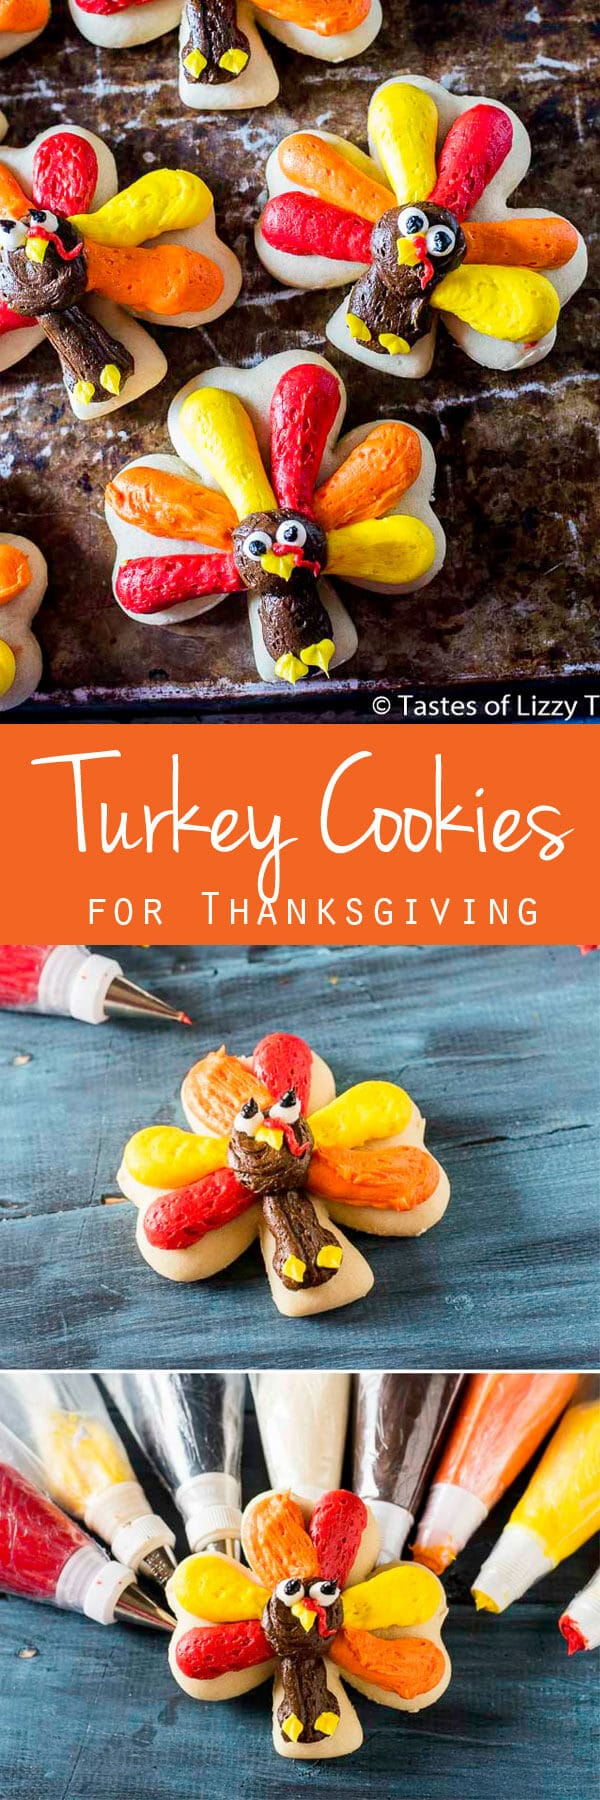 turkey-cookies-for-thanksgiving-11